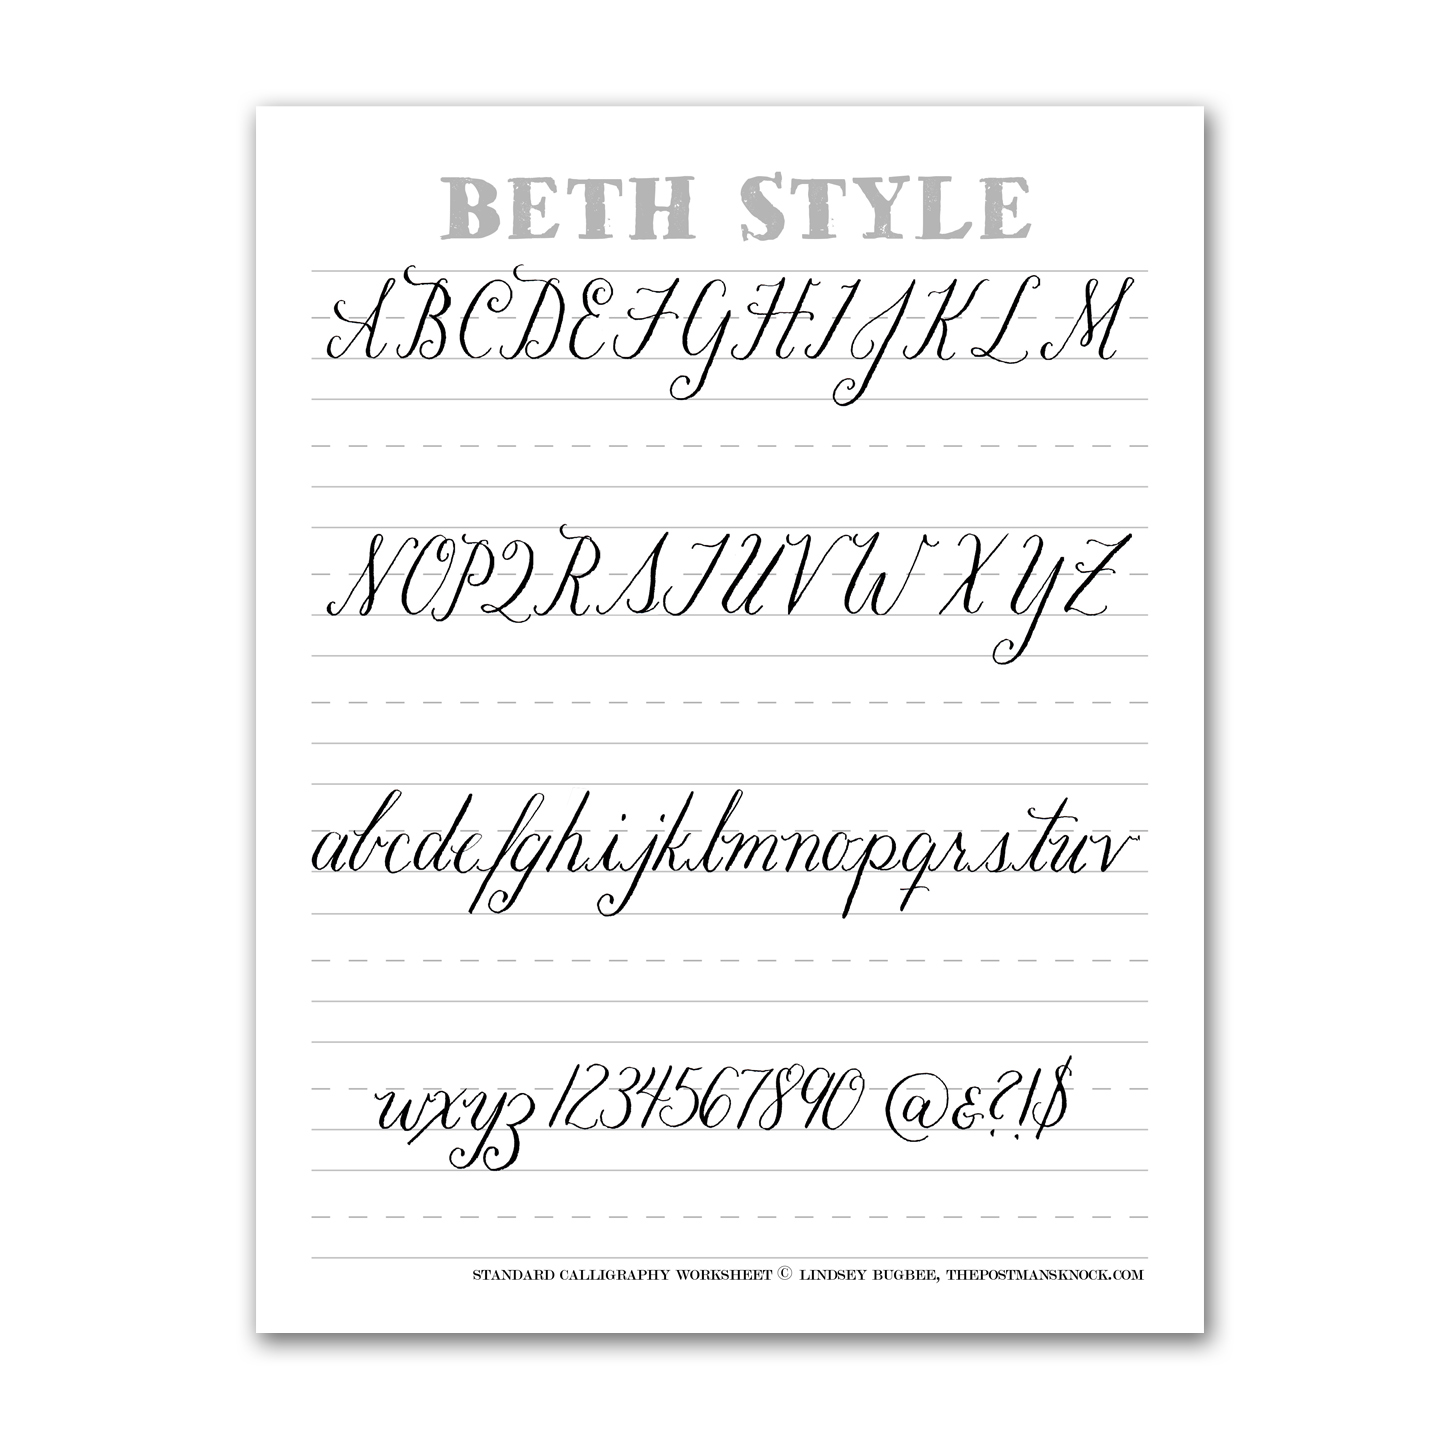 Beth Style Calligraphy Standard Worksheet